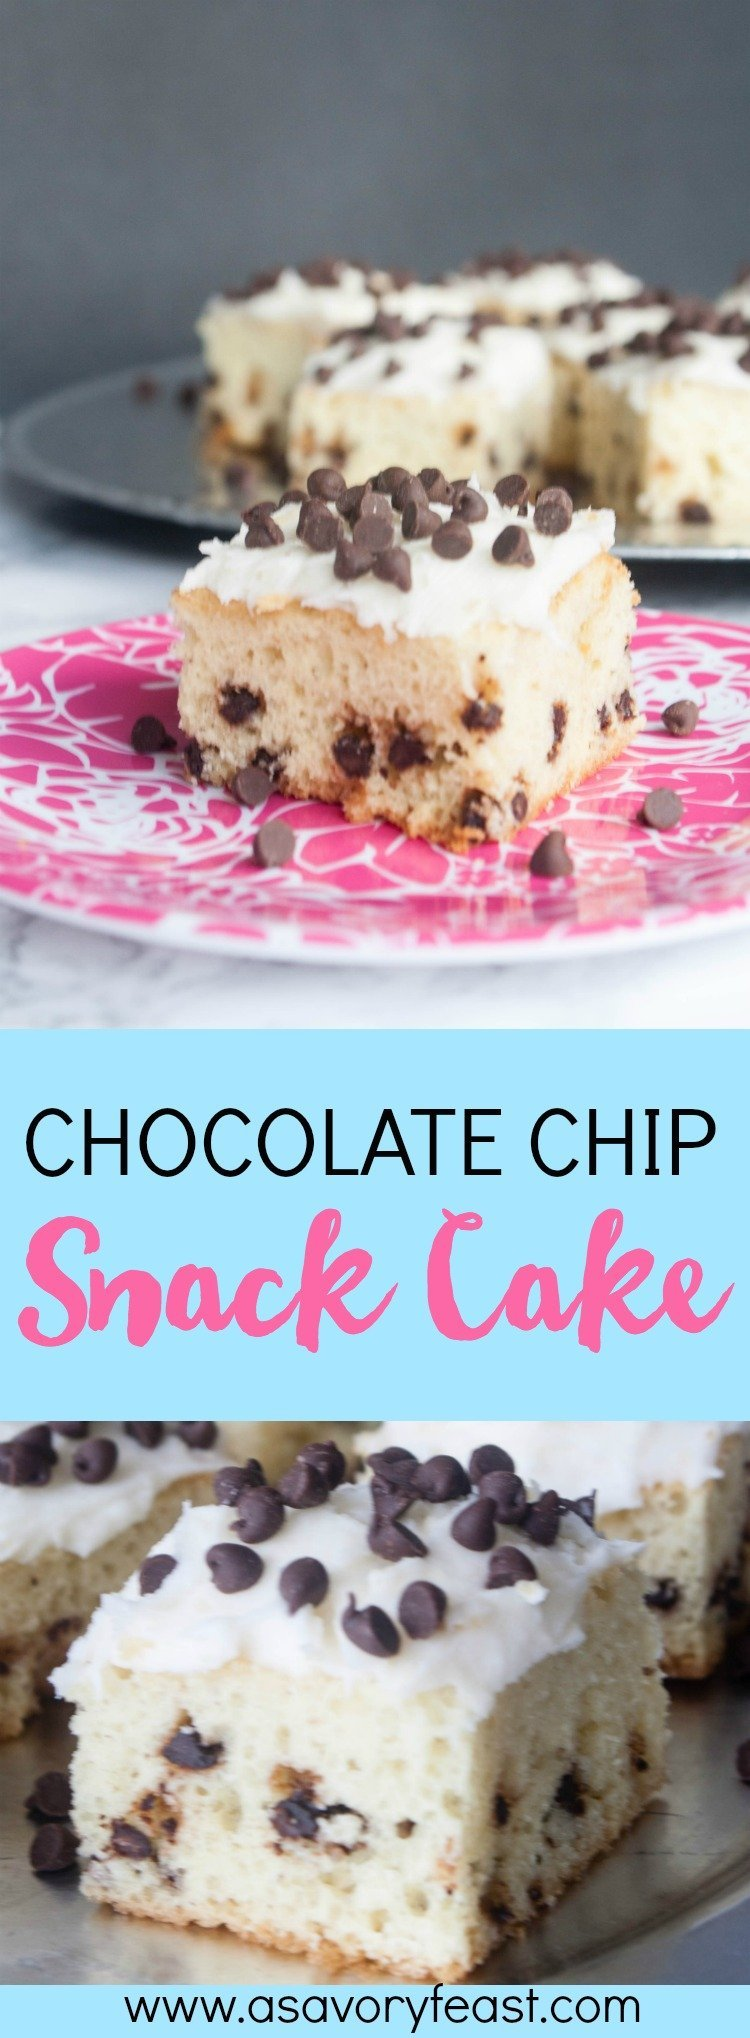 Mini Chocolate Chips turn this yellow cake into a fun treat for a party or shower! Chocolate Chip Snack Cake is a dessert that will feed a crowd. It starts with a yellow cake filled with mini chocolate chips. It's topped with a cream cheese frosting and more mini chocolate chips.